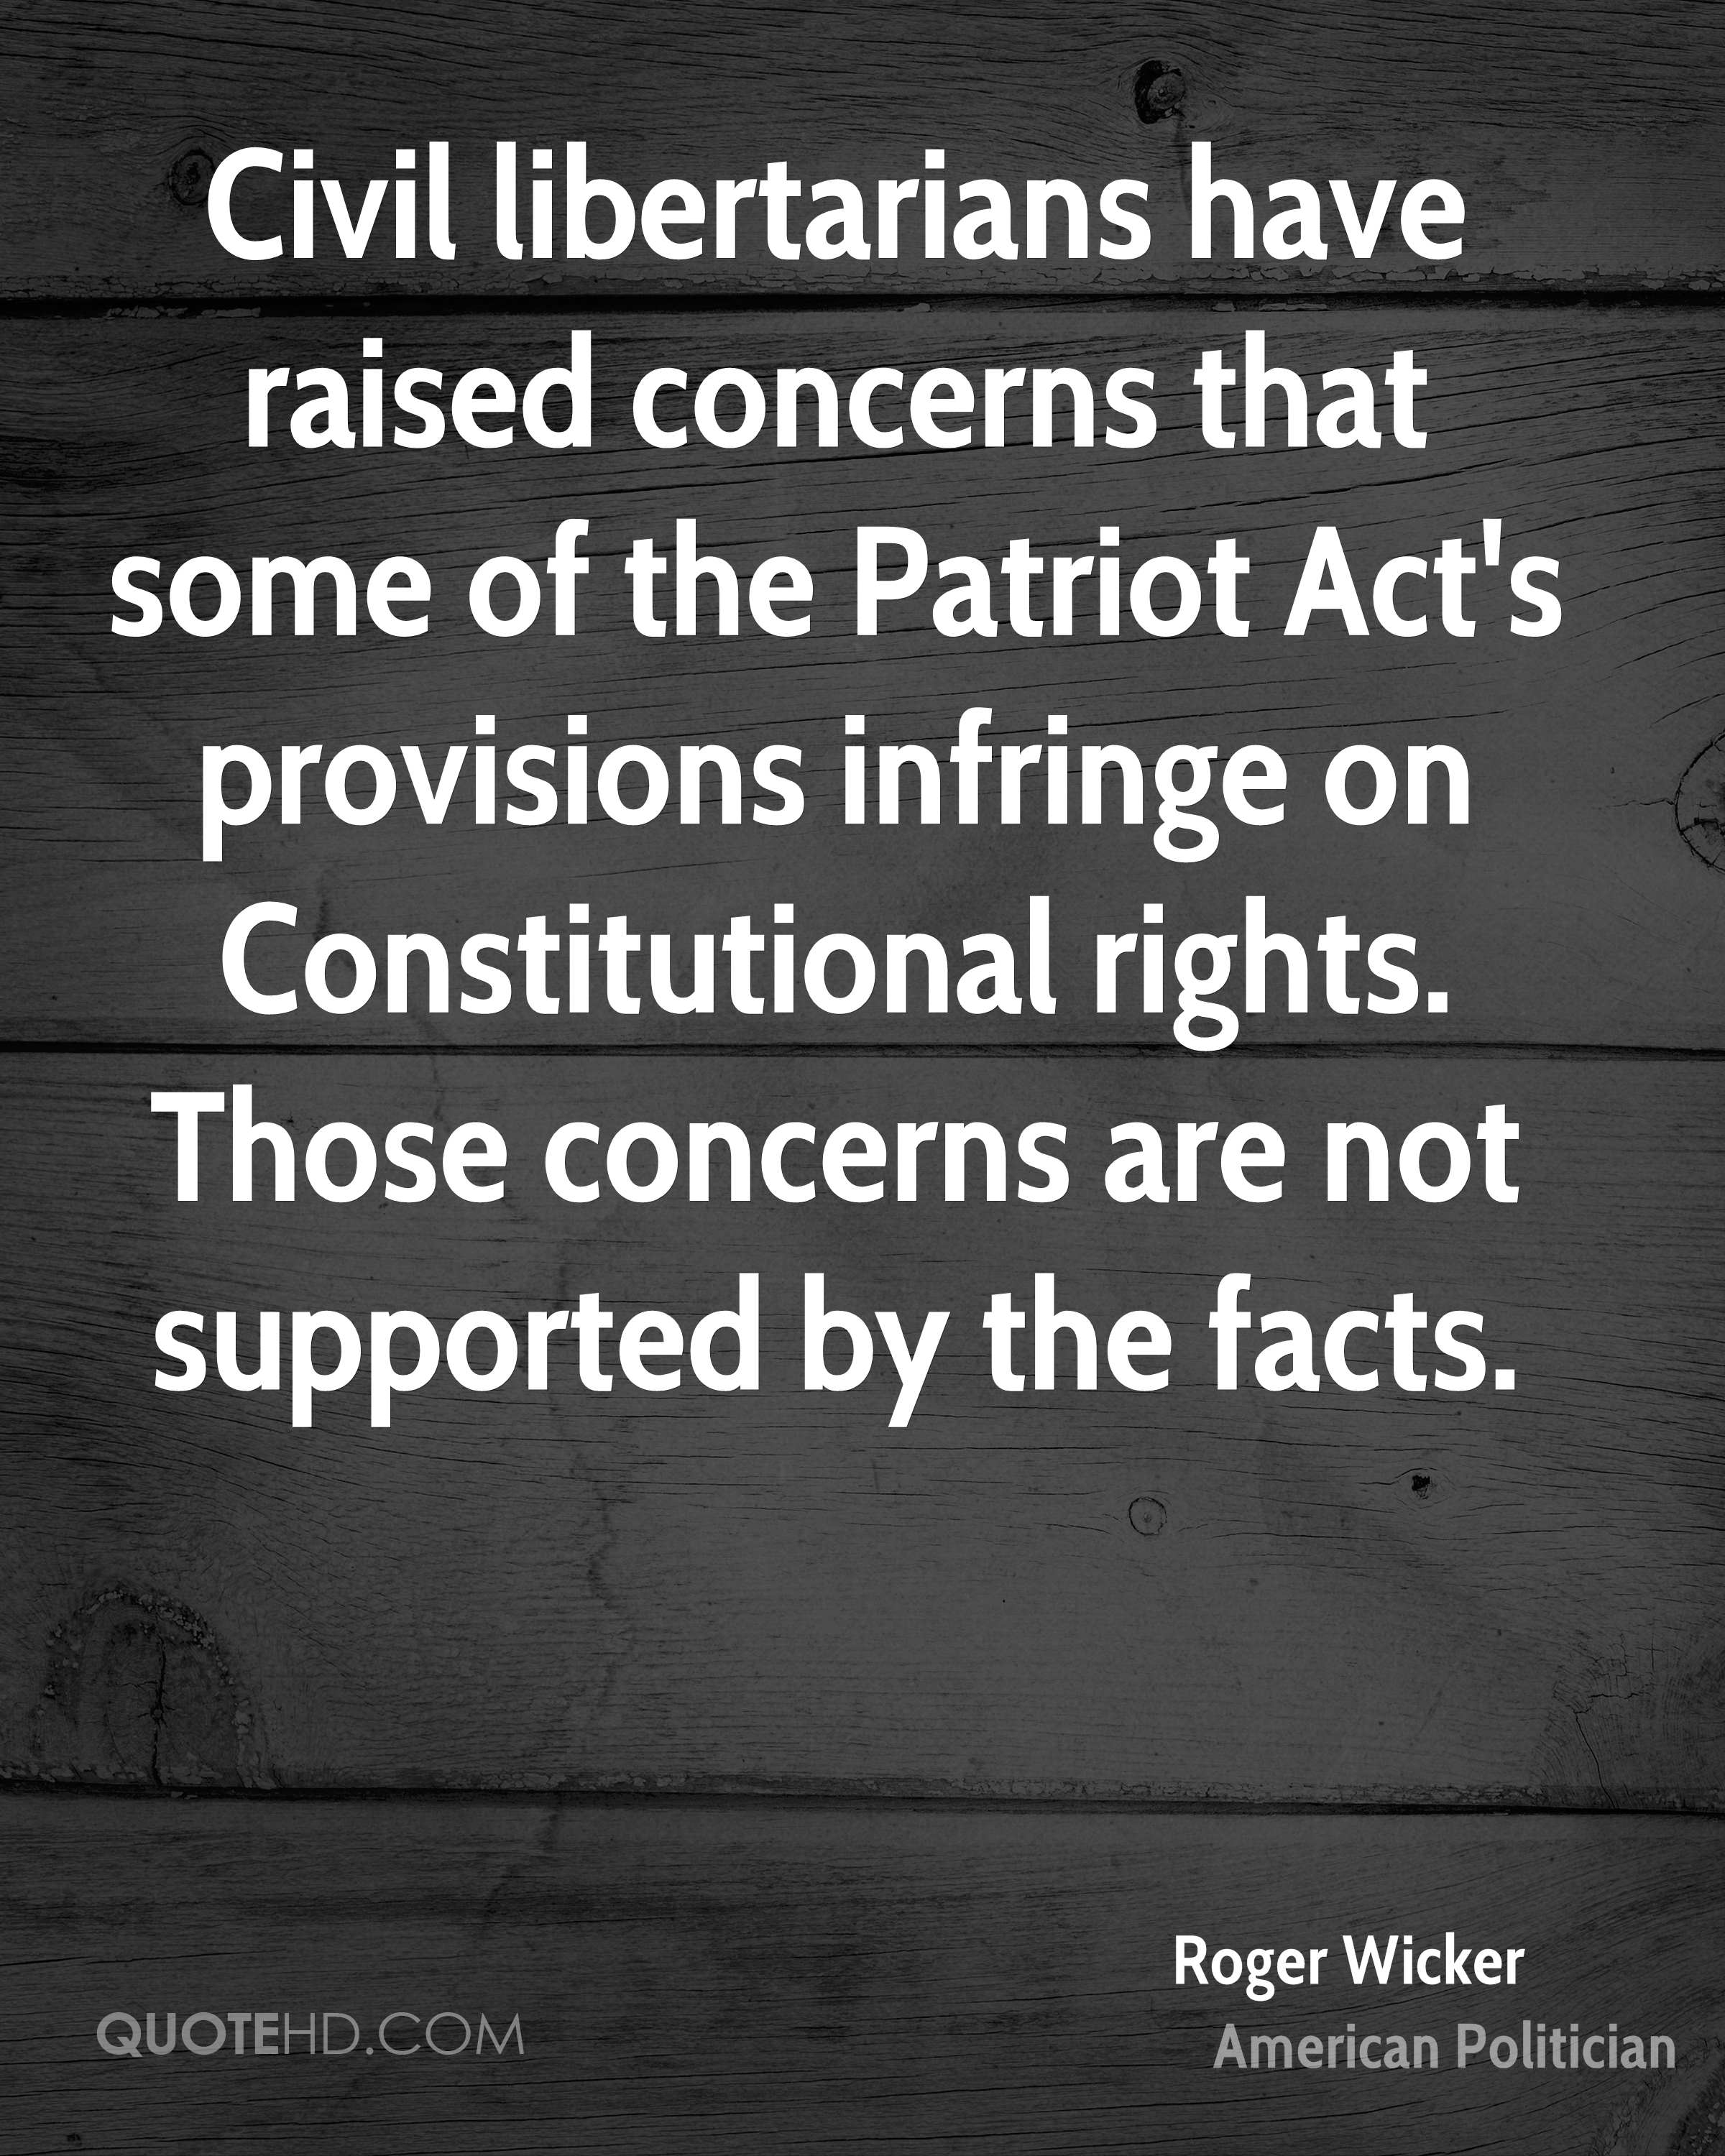 Civil libertarians have raised concerns that some of the Patriot Act's provisions infringe on Constitutional rights. Those concerns are not supported by the facts.